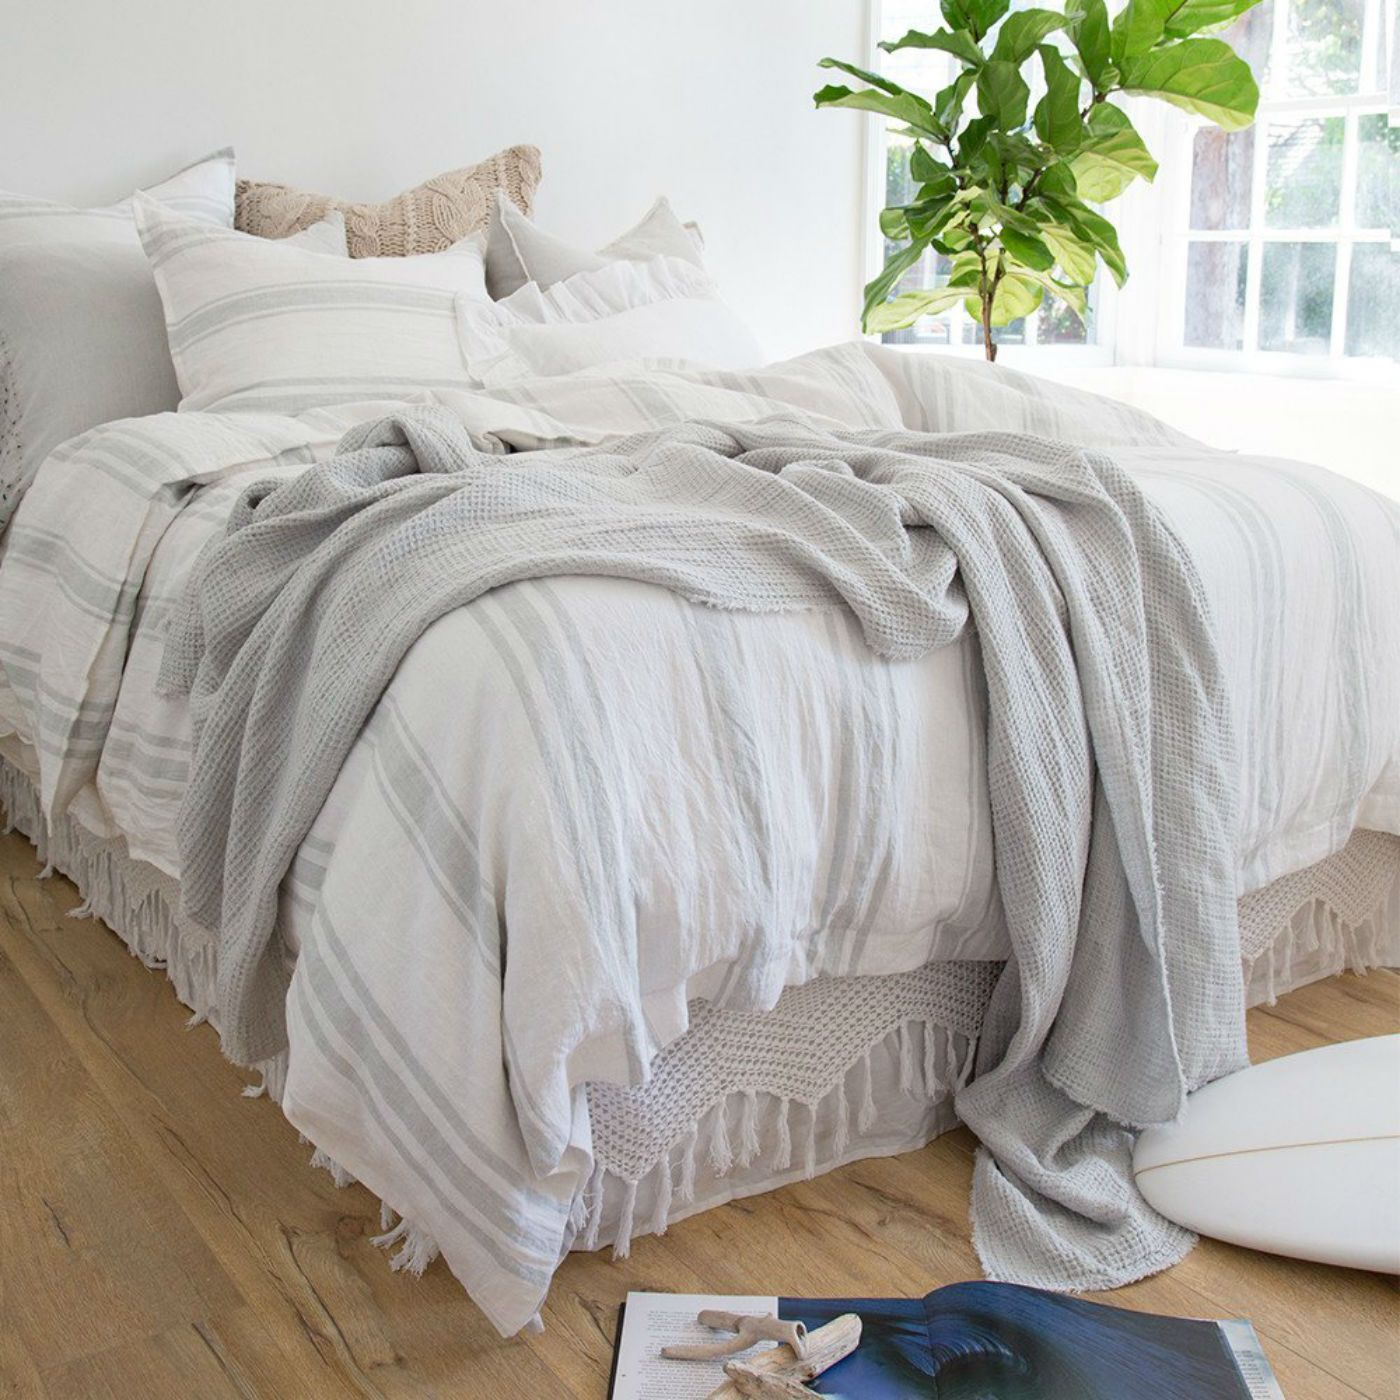 Indulge in the waffle-textured Venice Oversized Throw from Pom Pom at Home. This is the perfect throw blanket to wrap yourself with or to dress the foot of the bed.100% linen Fringe trim edge 60